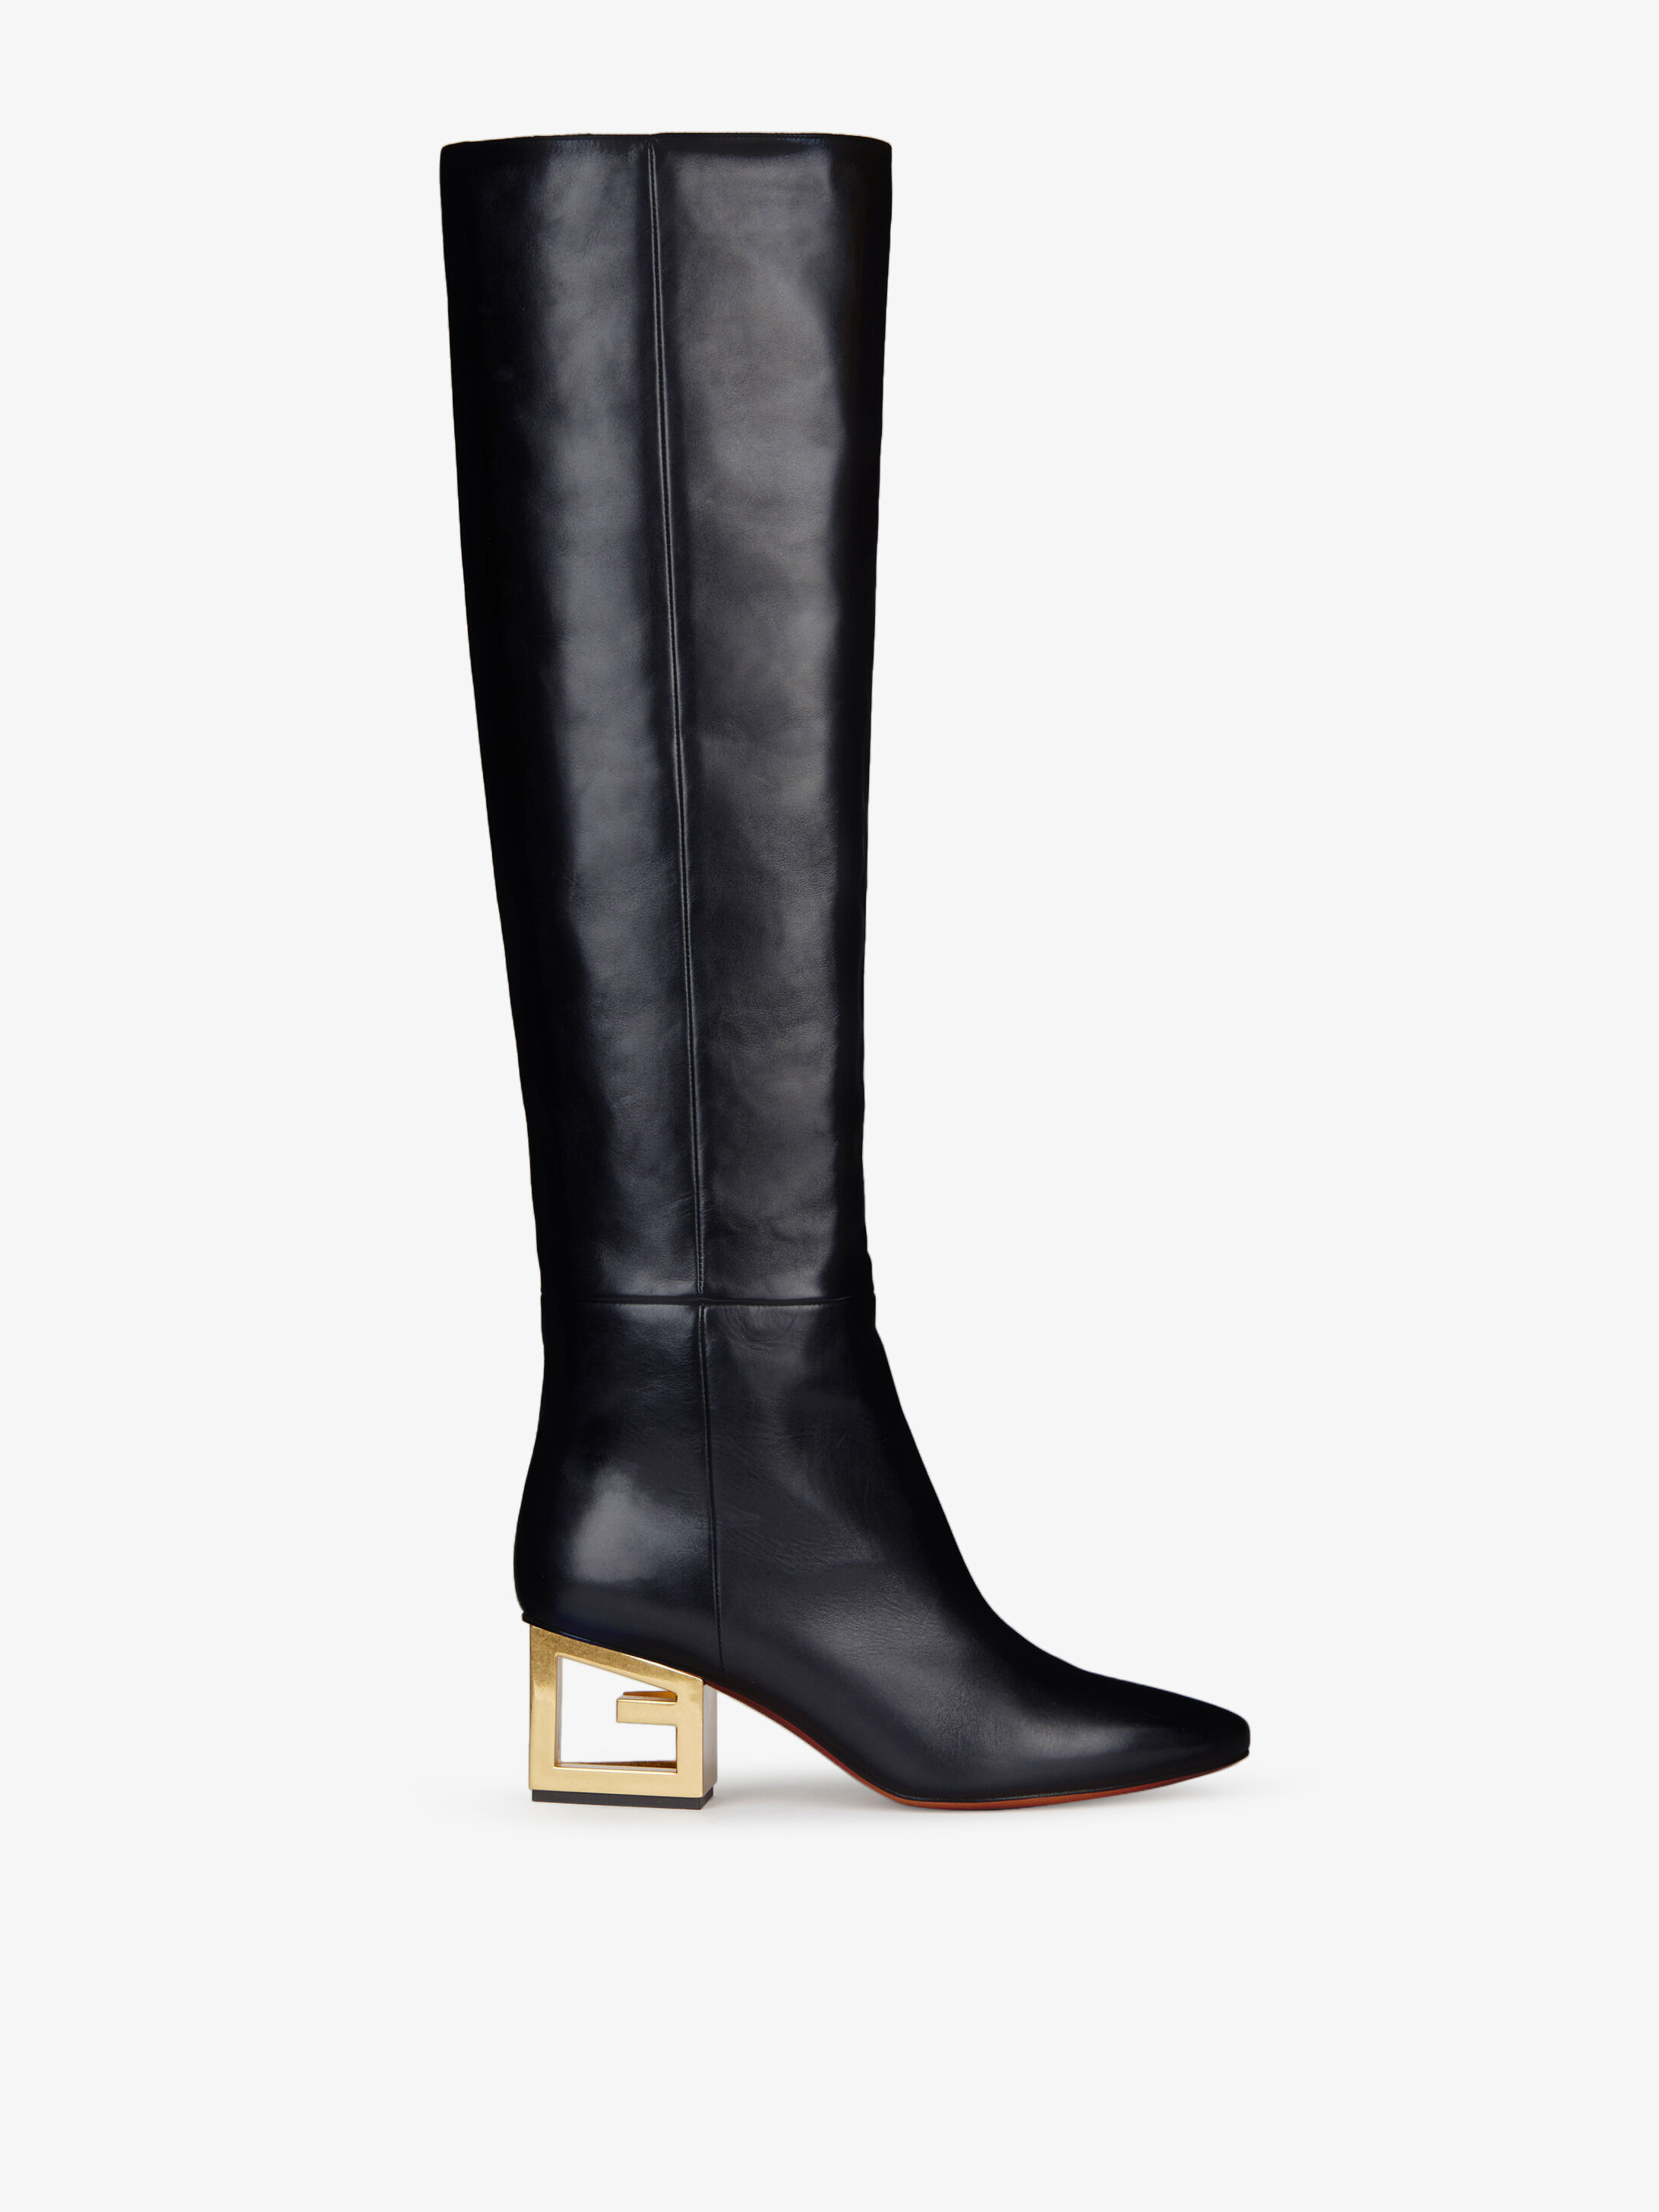 25431e295354 Women's Boots collection by Givenchy.   GIVENCHY Paris